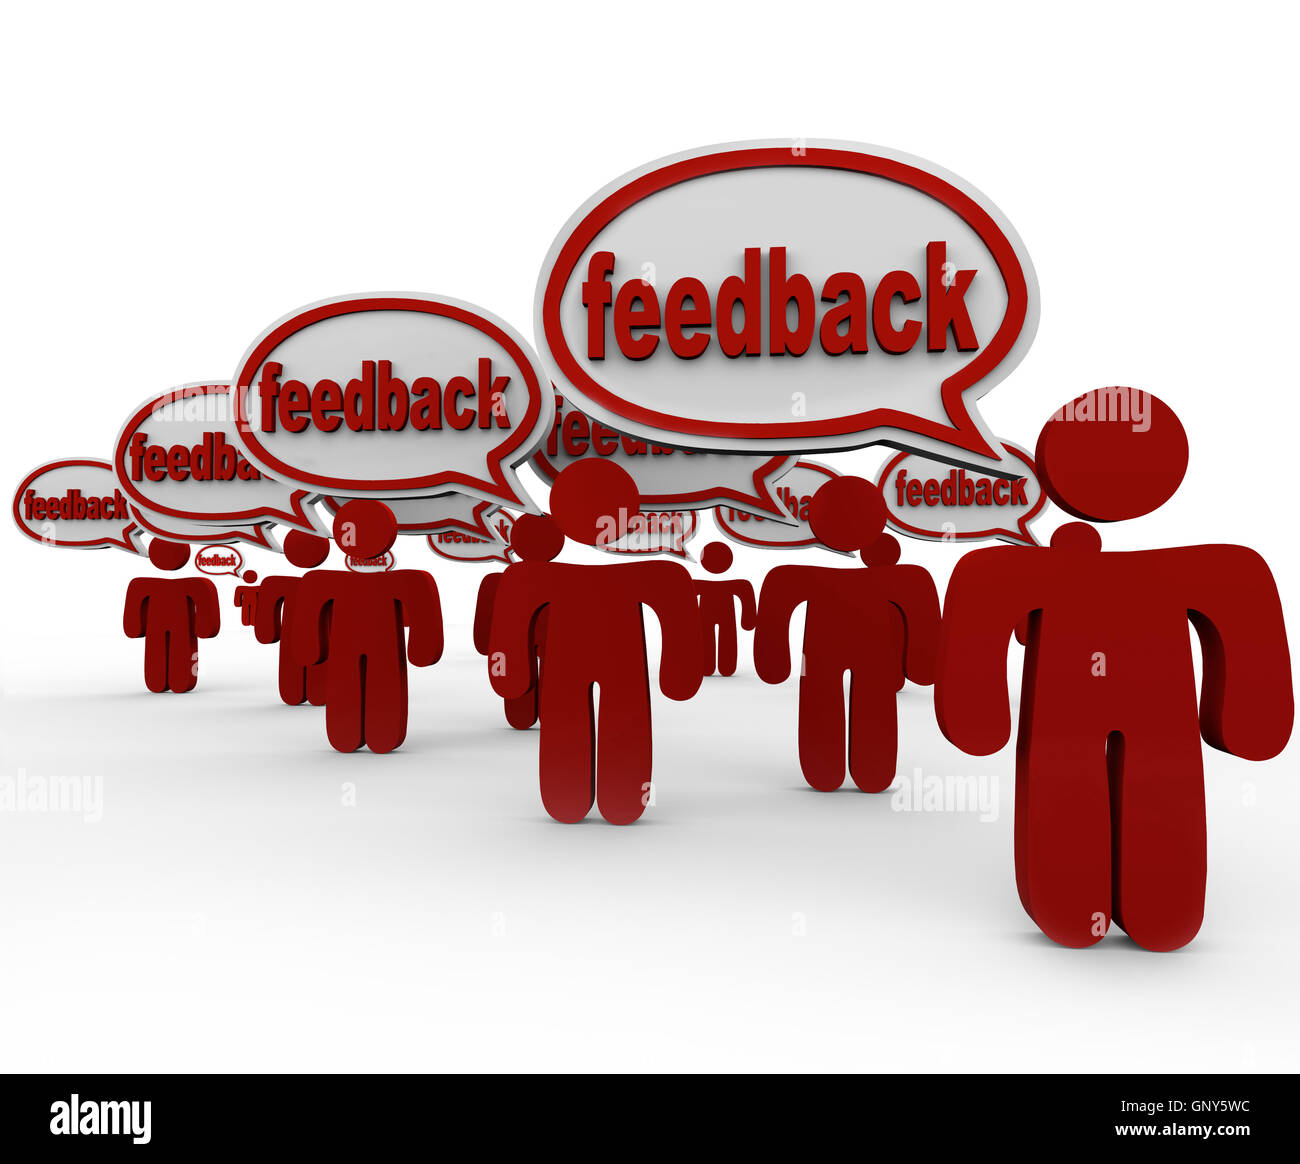 Feedback - Many People Talking and Giving Opinions - Stock Image